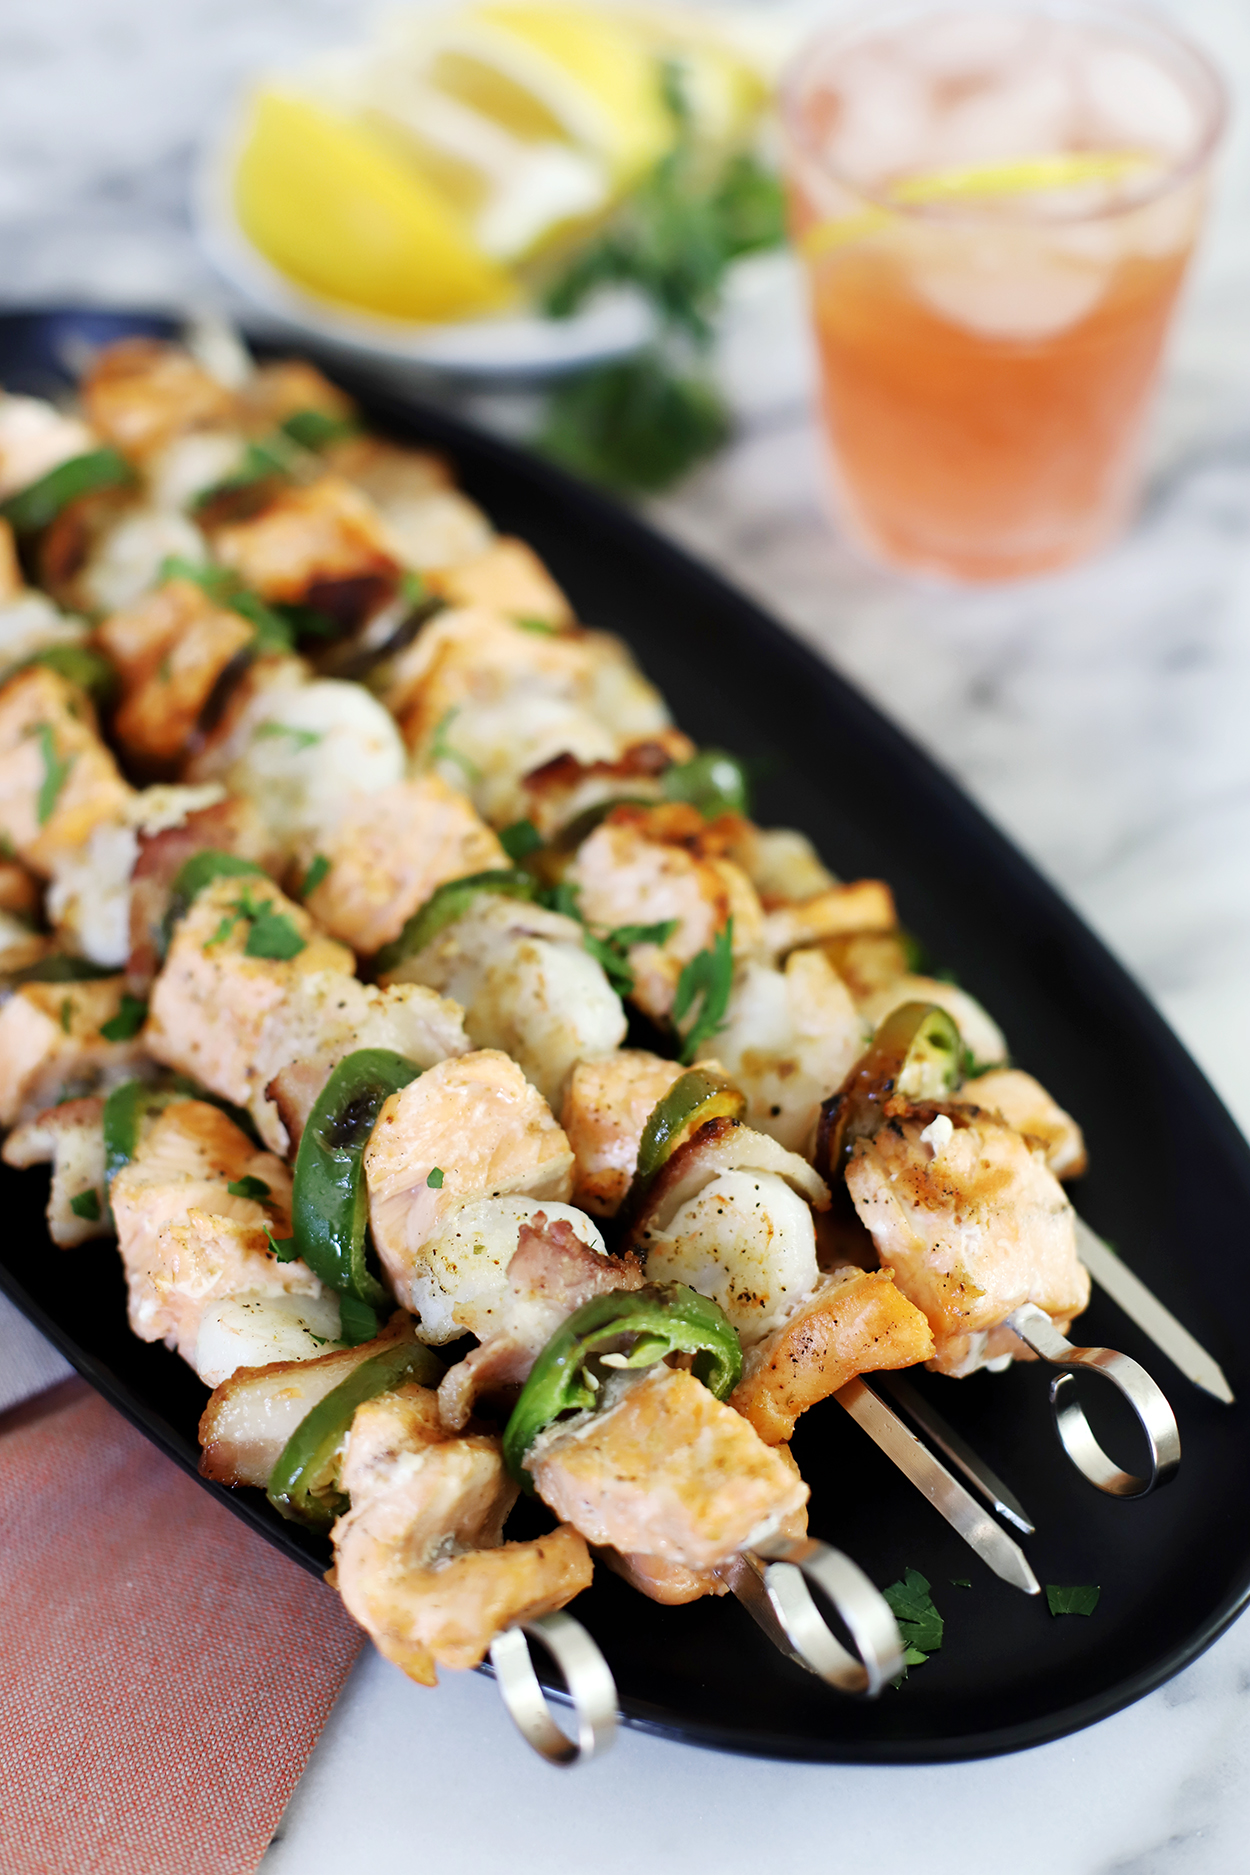 salmon and shrimp skewers on a black plate with lemons and a pink drink in the background